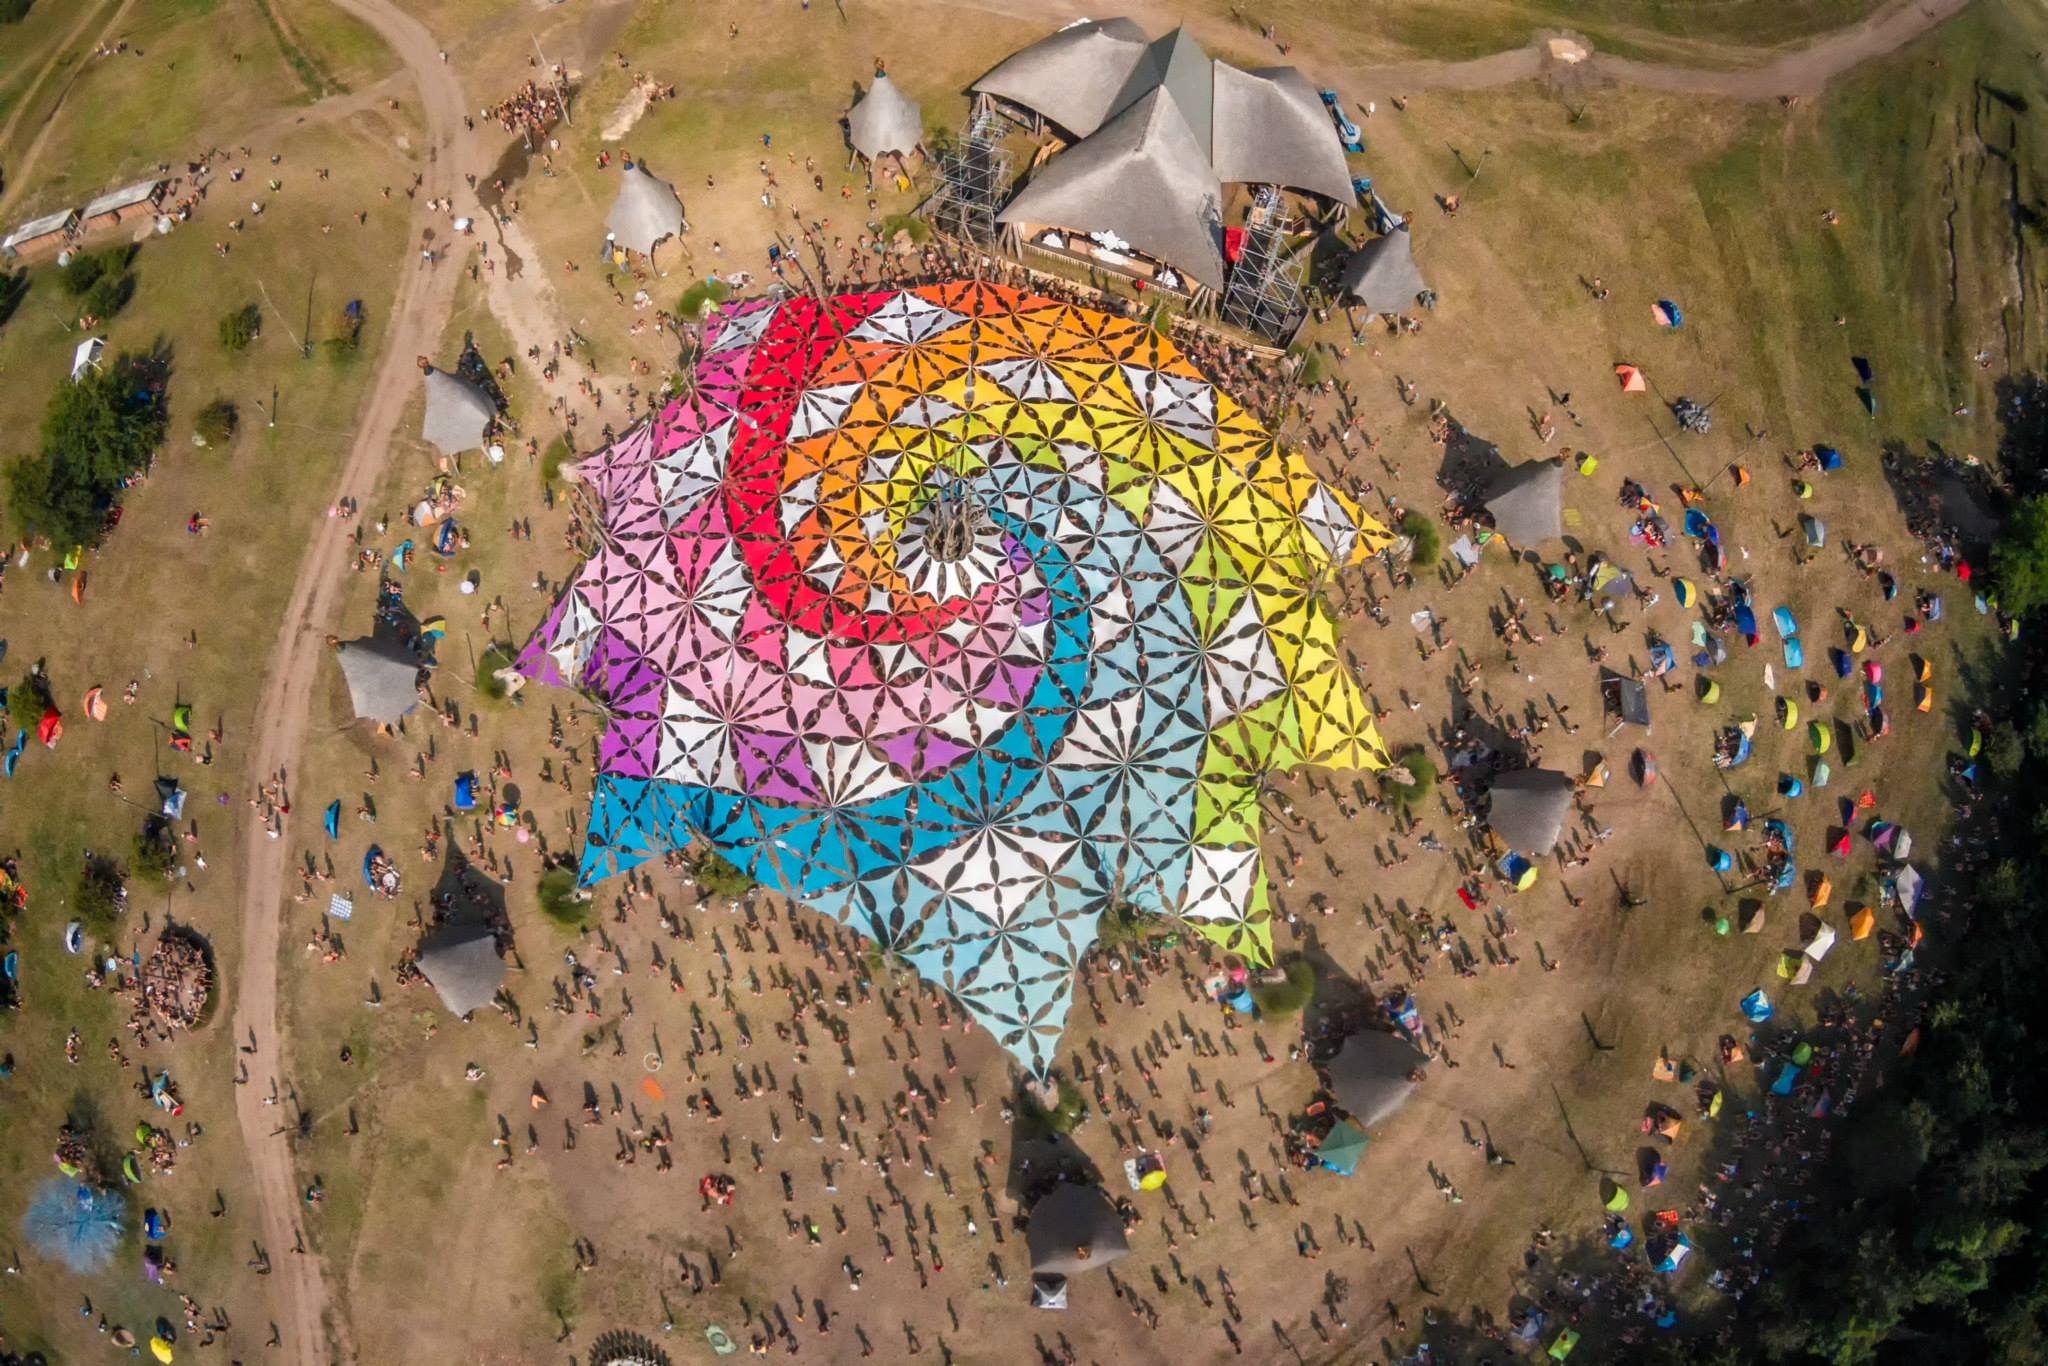 Ozora Festival This Magical Picture Diary Of Ozora Festival Will Entrance